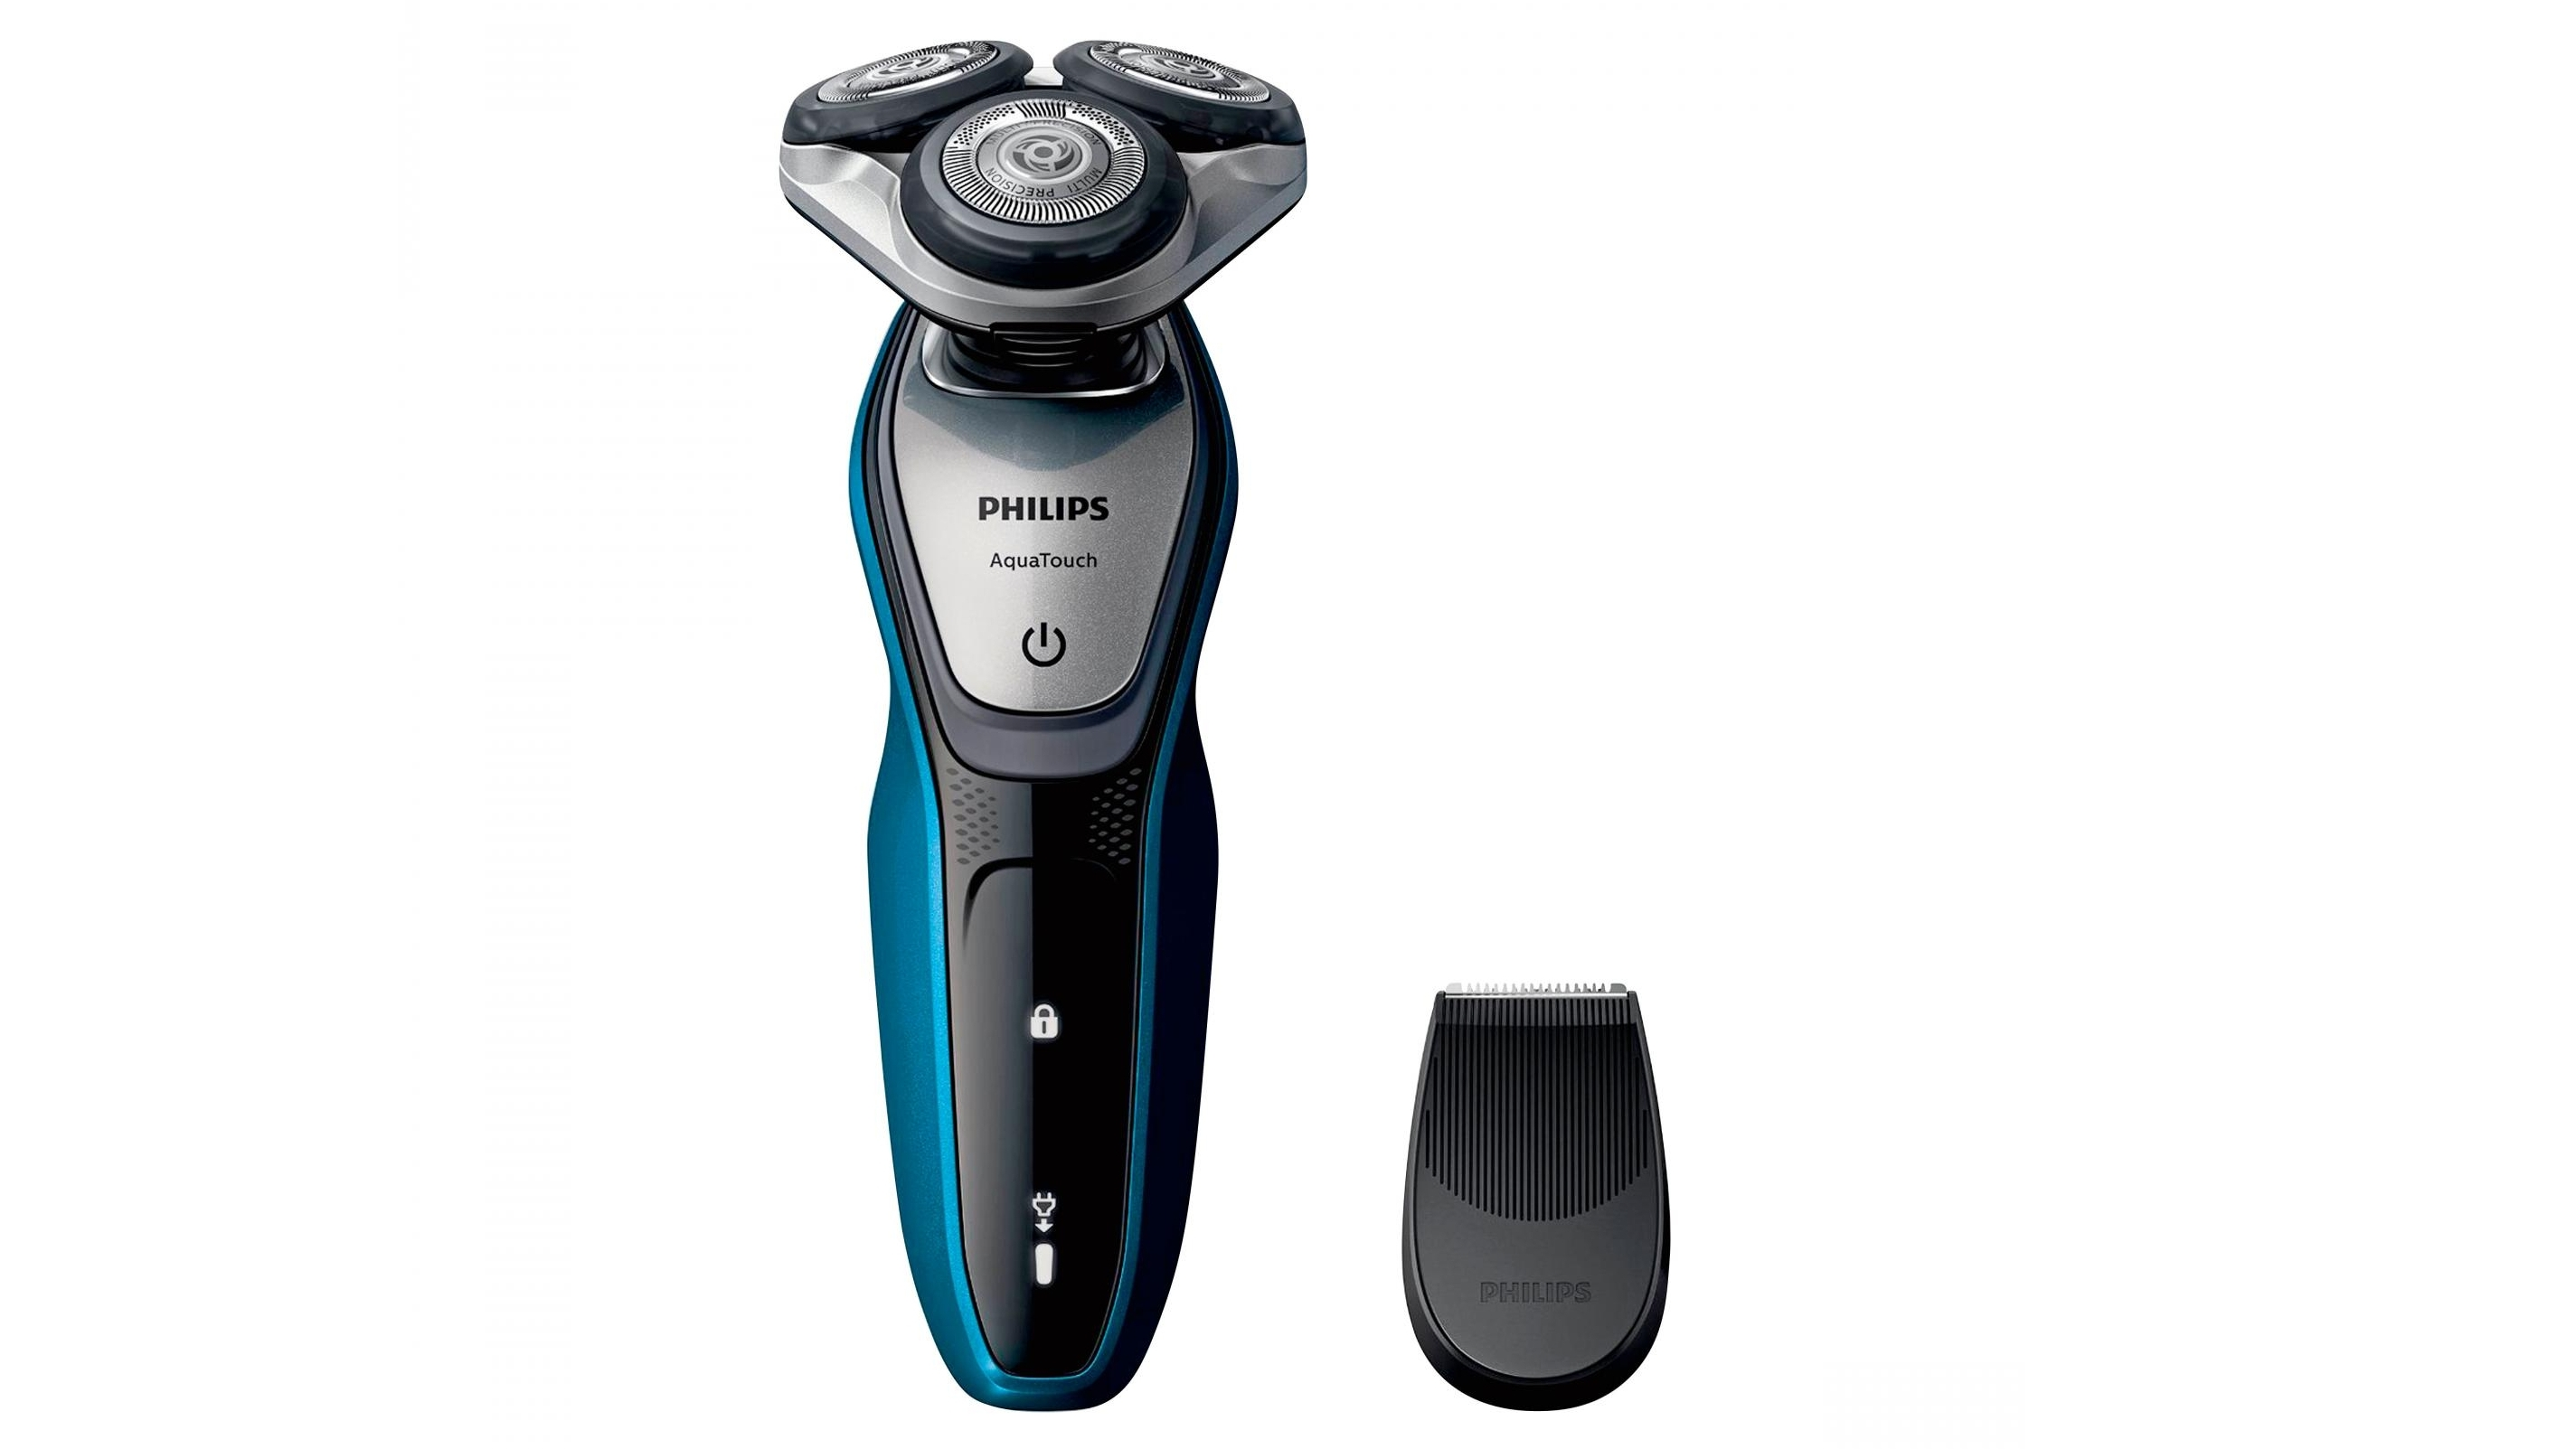 Philips Aquatouch S5420 06 Multiprecision Wet And Dry